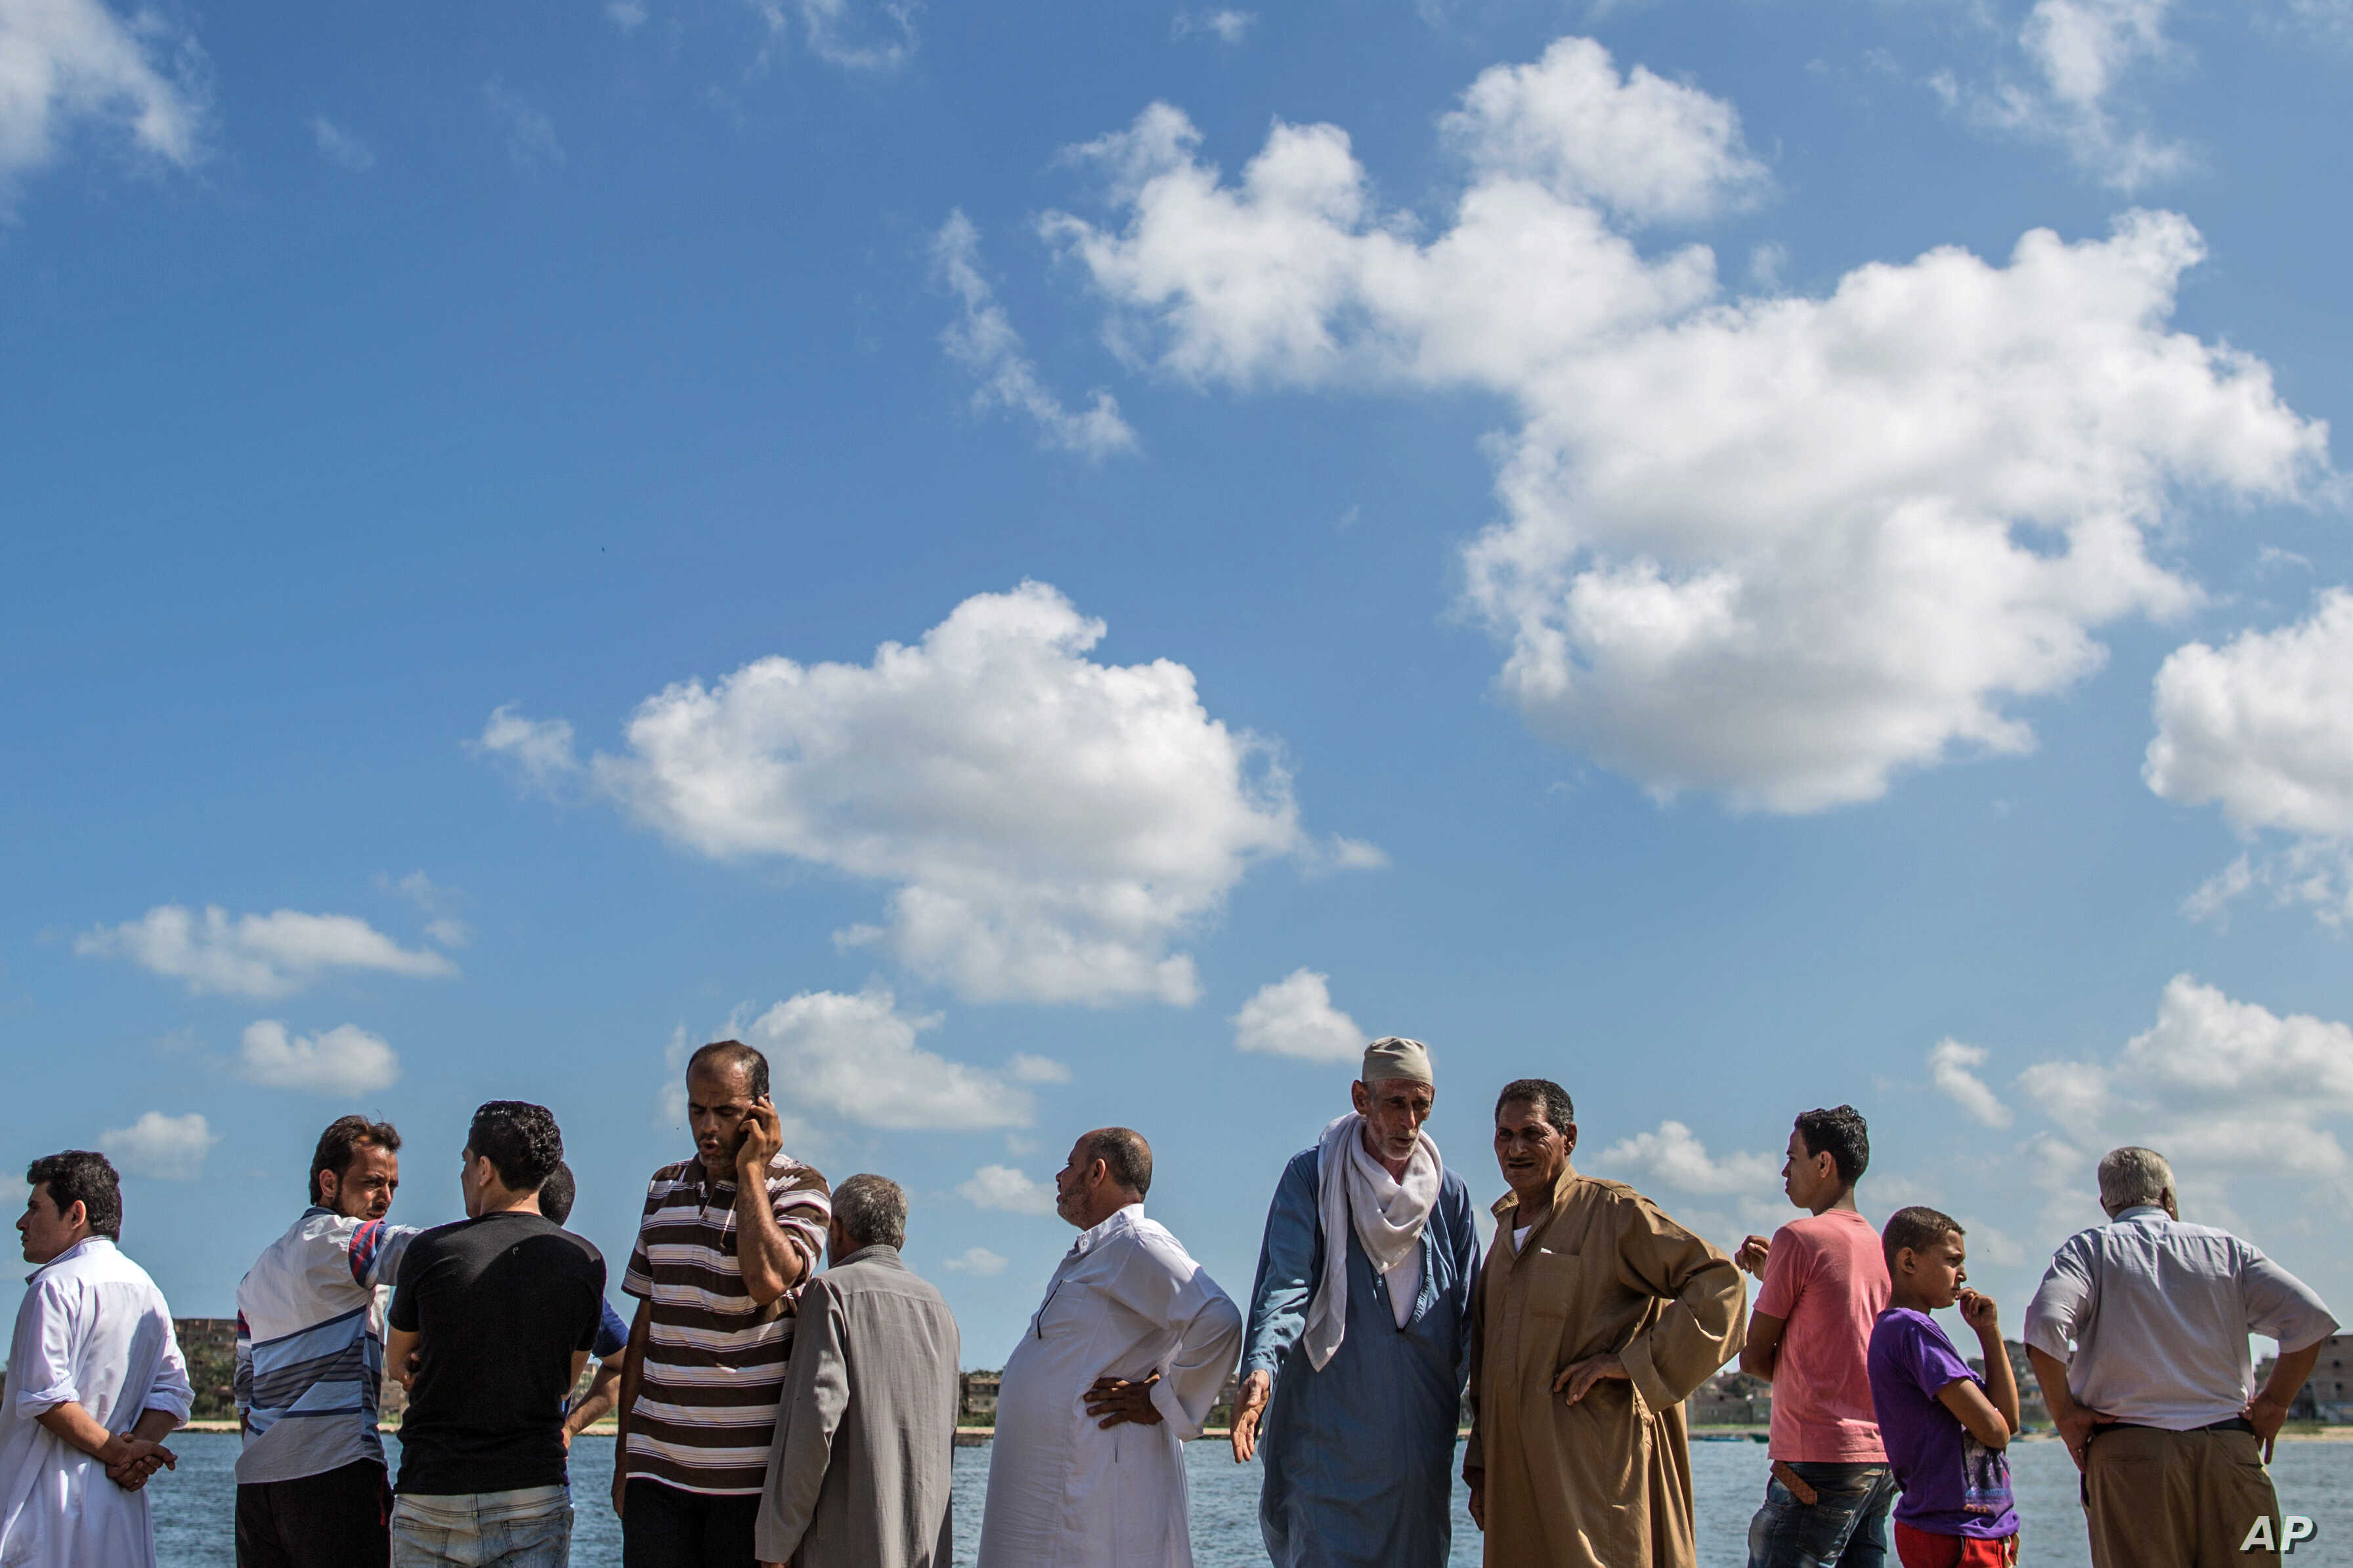 Relatives of Egyptians whose Europe-bound boat capsized off Egypt's Mediterranean coast watch departing boats that are participating in a search operation, in Rosetta, Egypt, Sept. 22, 2016.